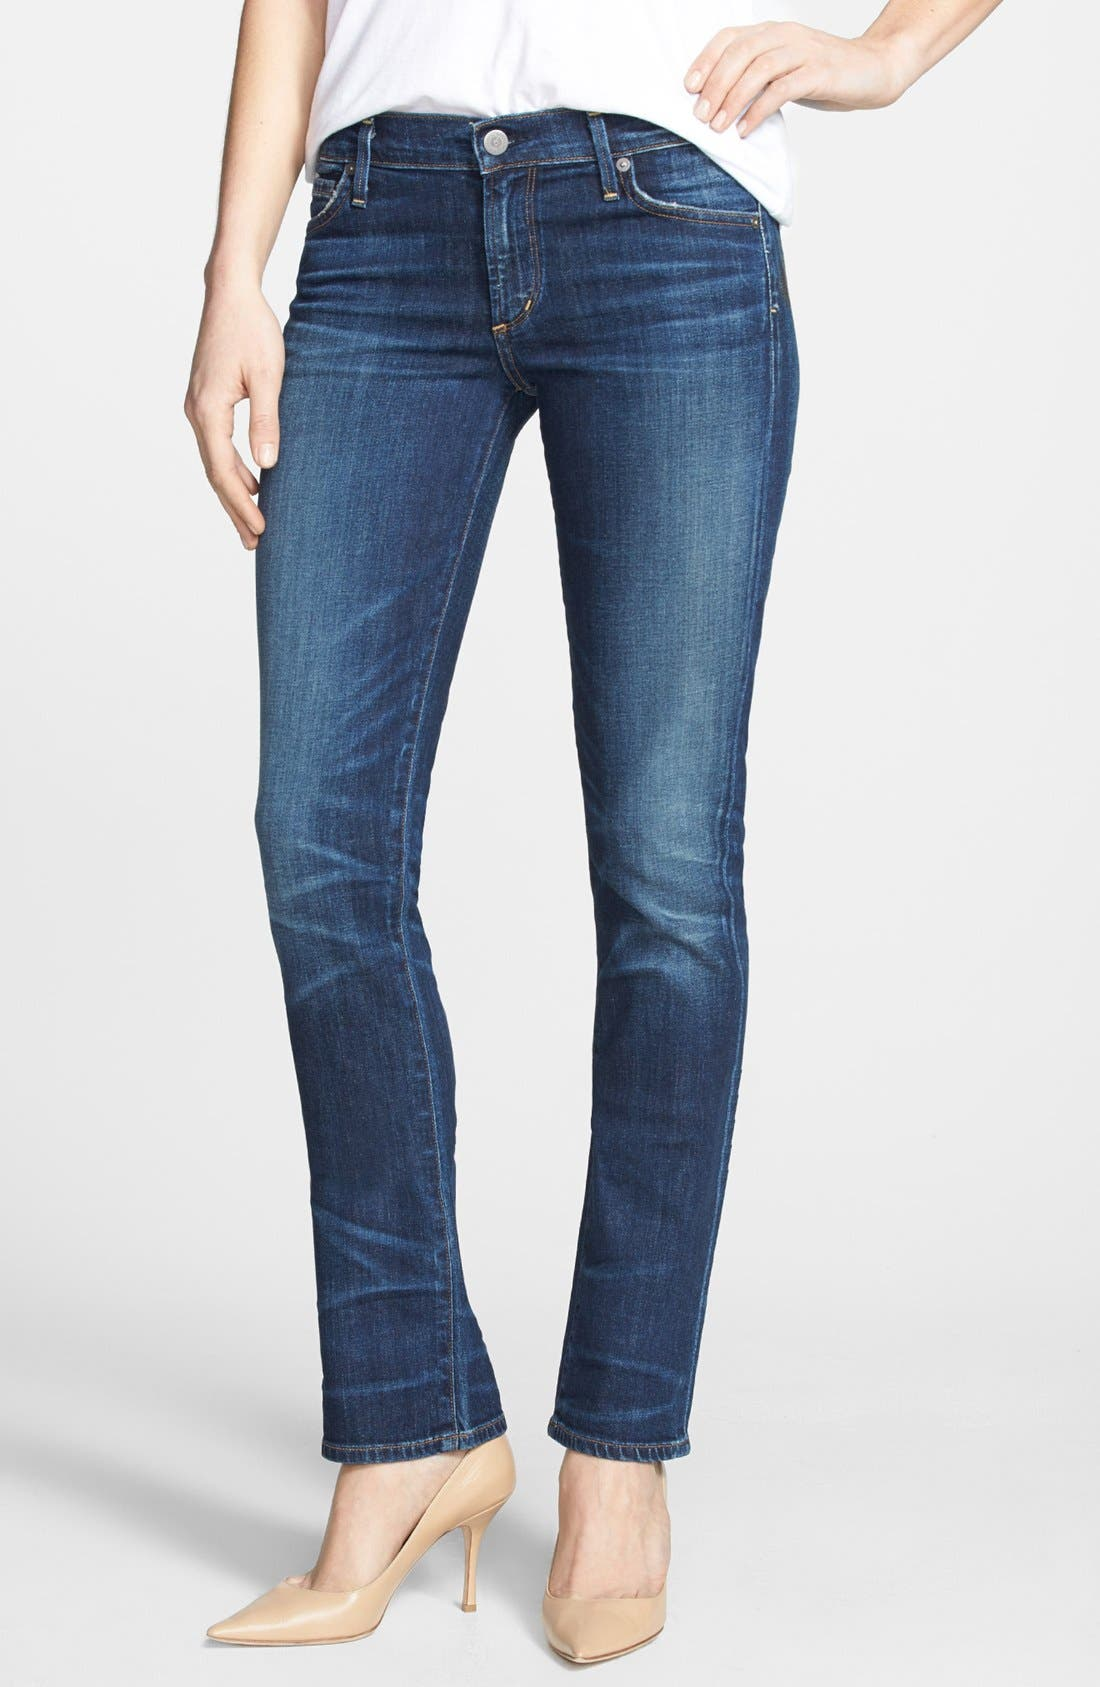 Alternate Image 1 Selected - Citizens of Humanity 'Ava' Straight Leg Jeans (Patina)